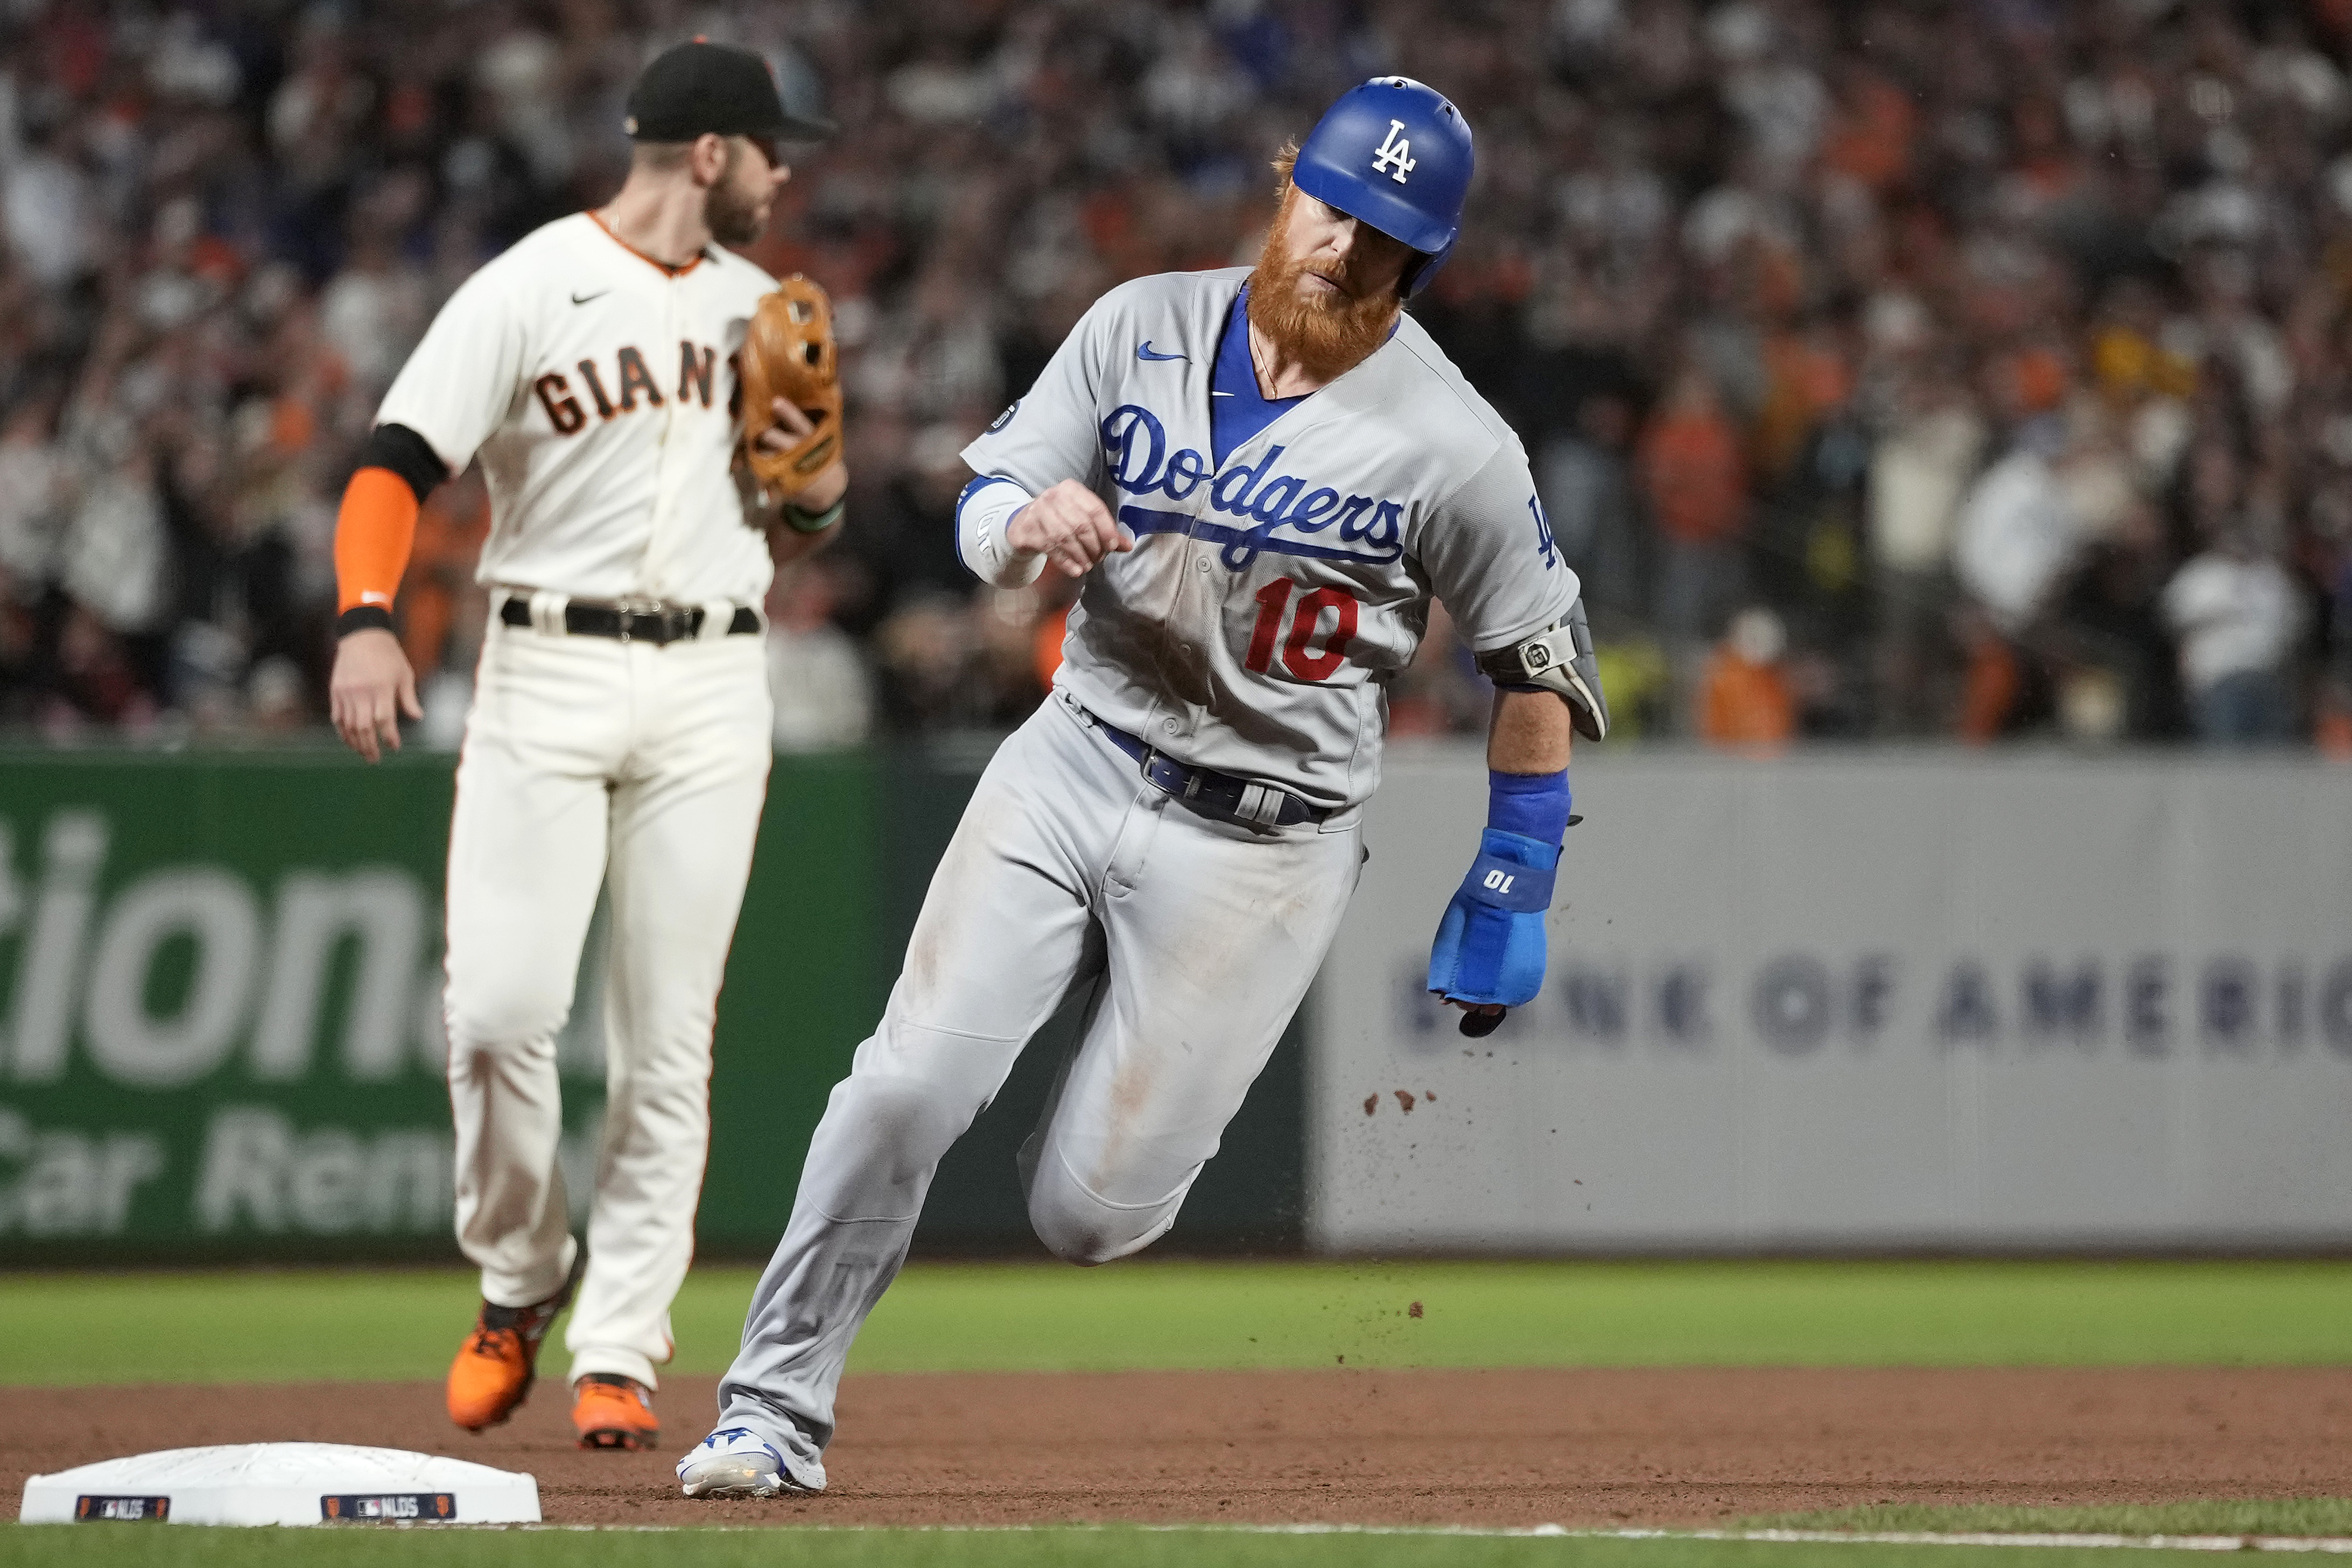 Justin Turner #10 of the Los Angeles Dodgers rounds third base to score on an RBI single by Cody Bellinger #35 against the San Francisco Giants during the ninth inning in game 5 of the National League Division Series at Oracle Park on October 14, 2021 in San Francisco, California.